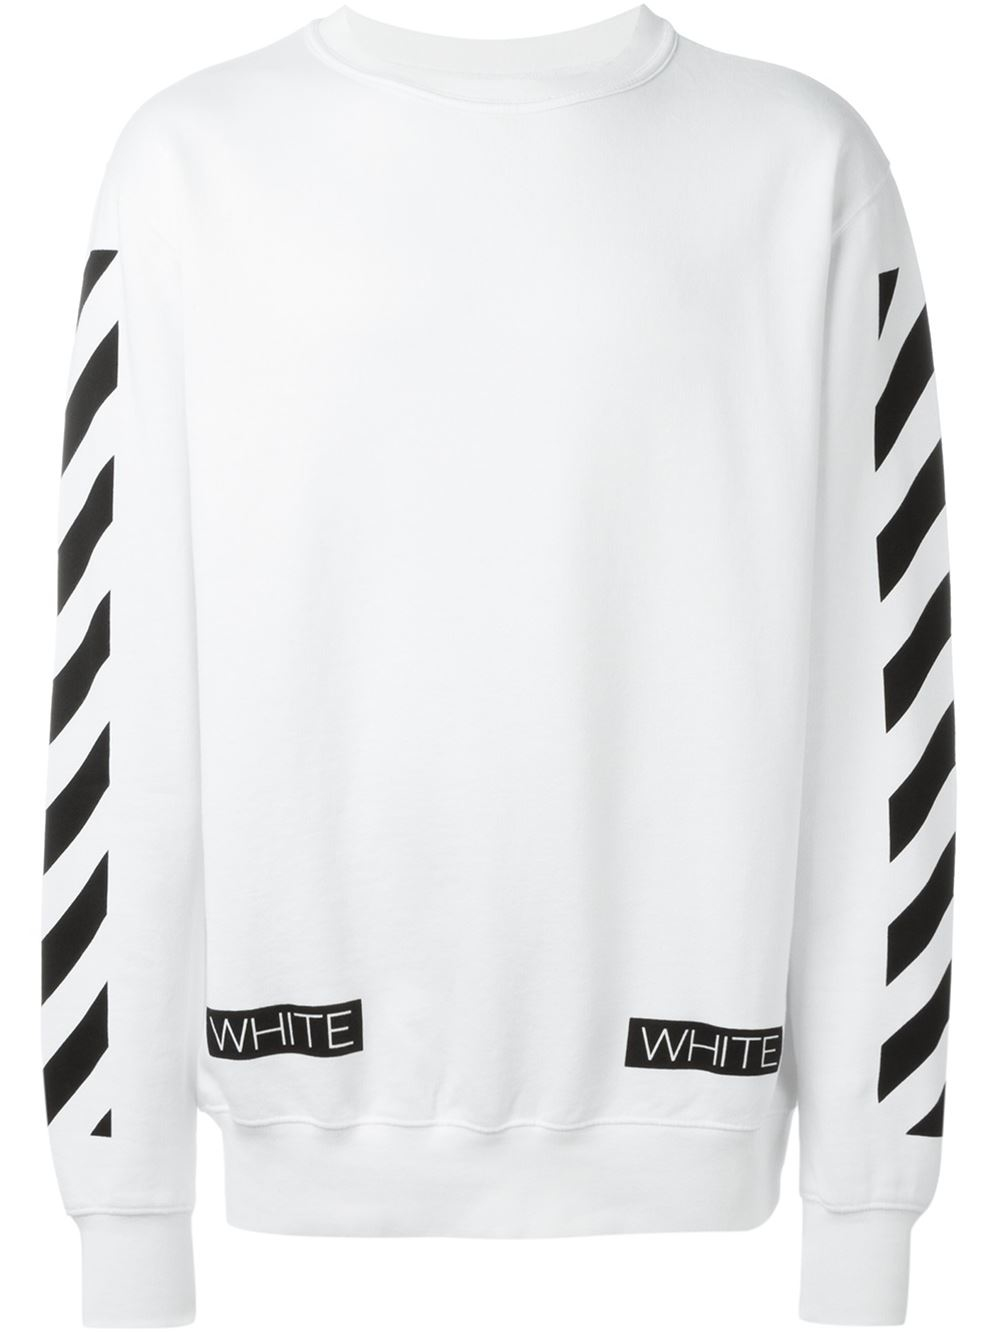 ed0bf7ad28ef Lyst - Off-White c o Virgil Abloh Crewneck Sweatshirt in Black for Men